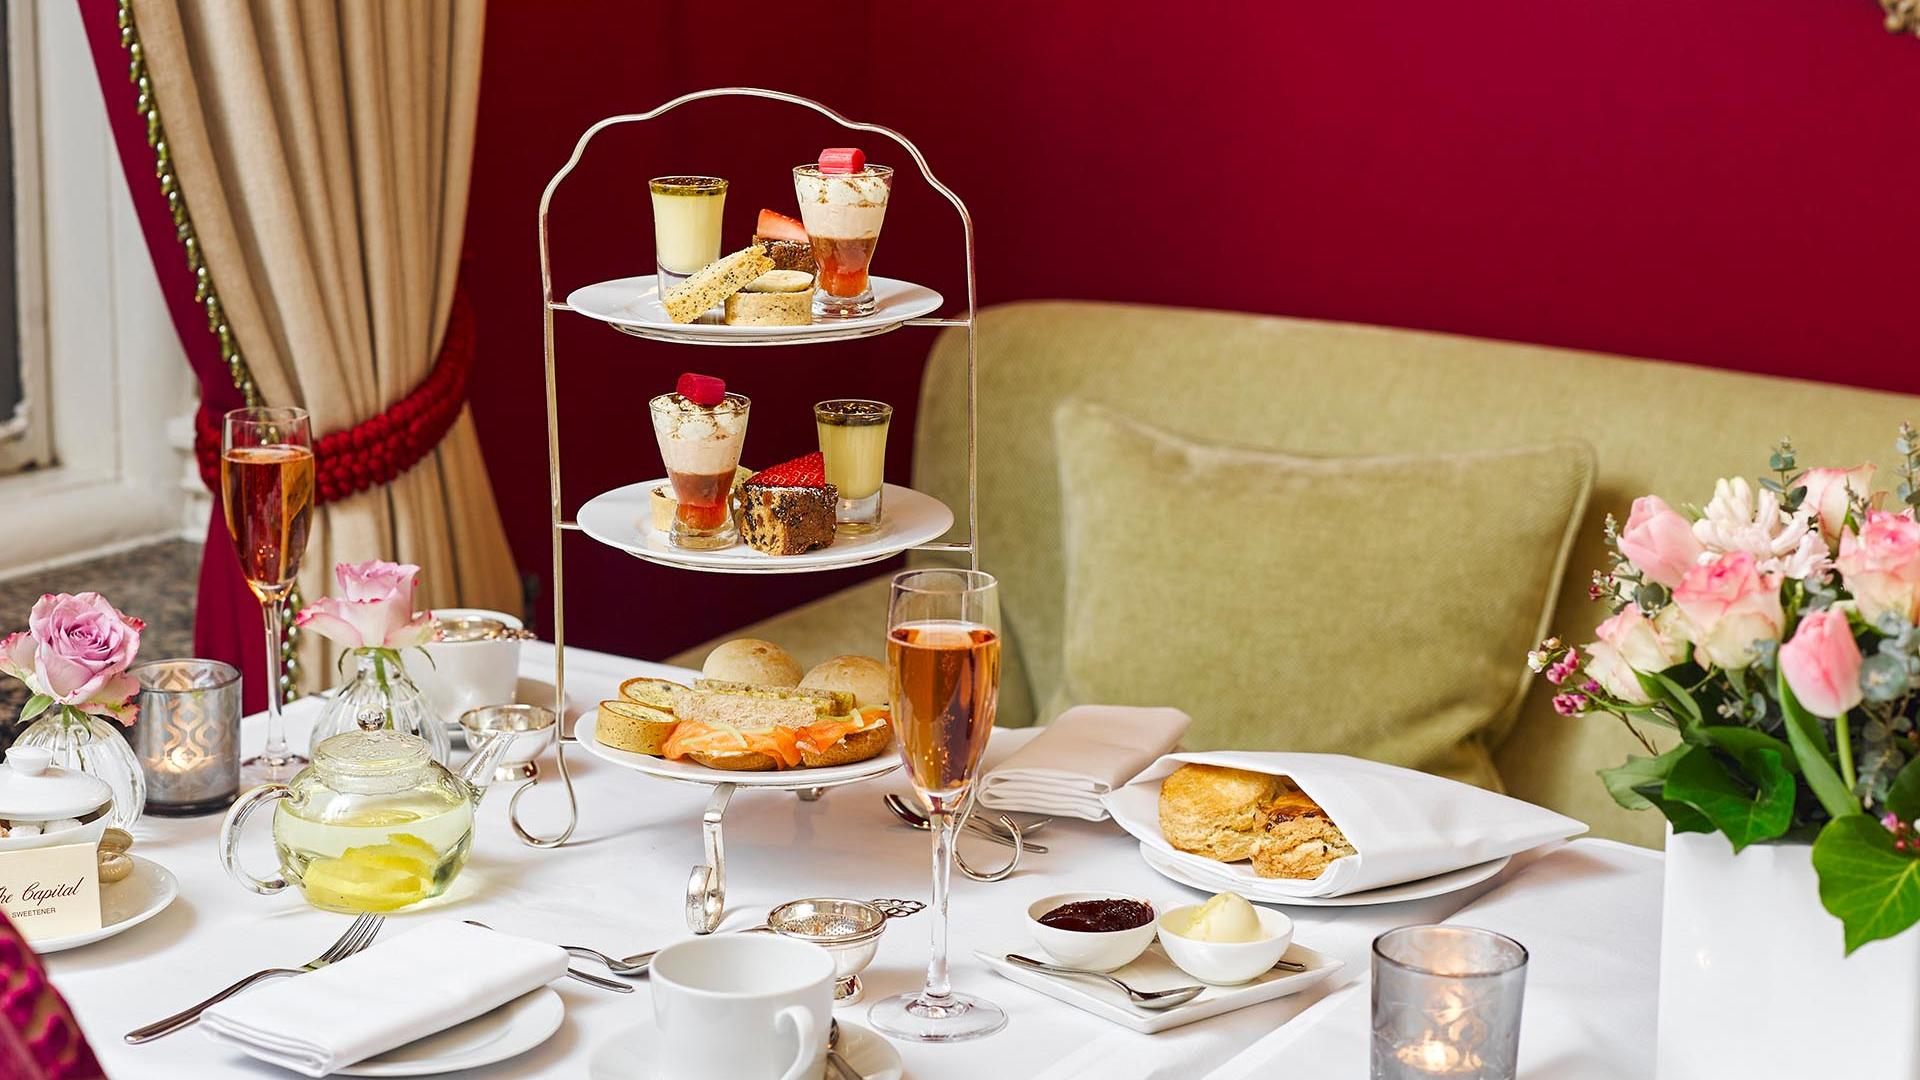 Afternoon Tea Biscuits at The Capital by Warwick